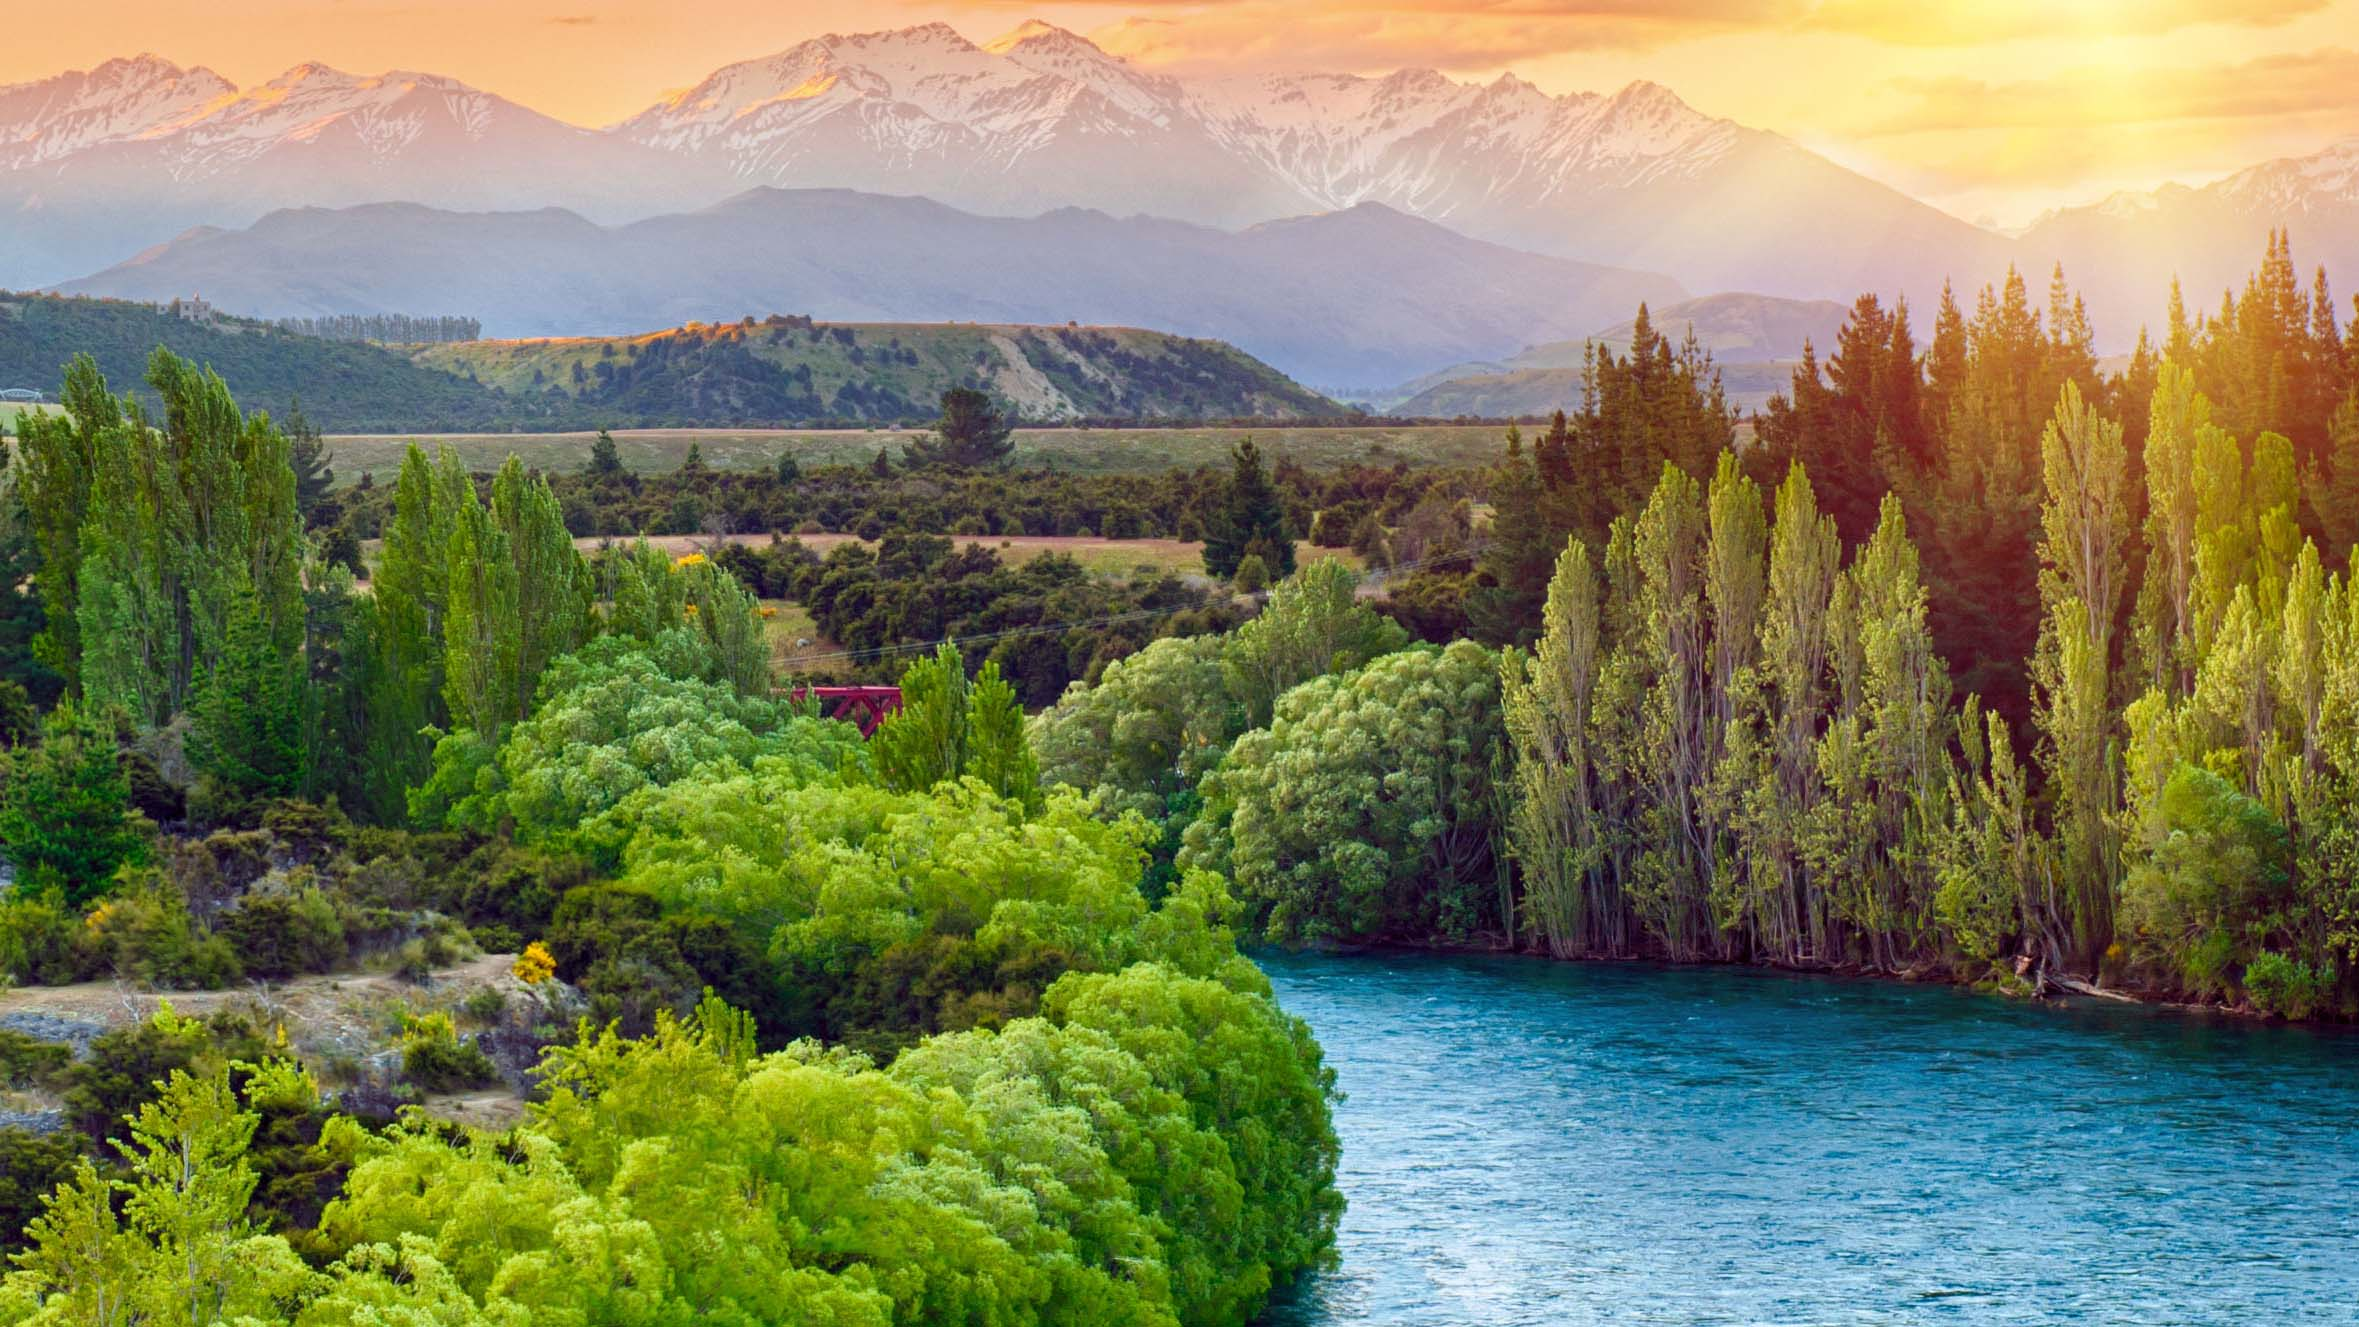 A river flows through a lush valley with mountains and a sunset behind